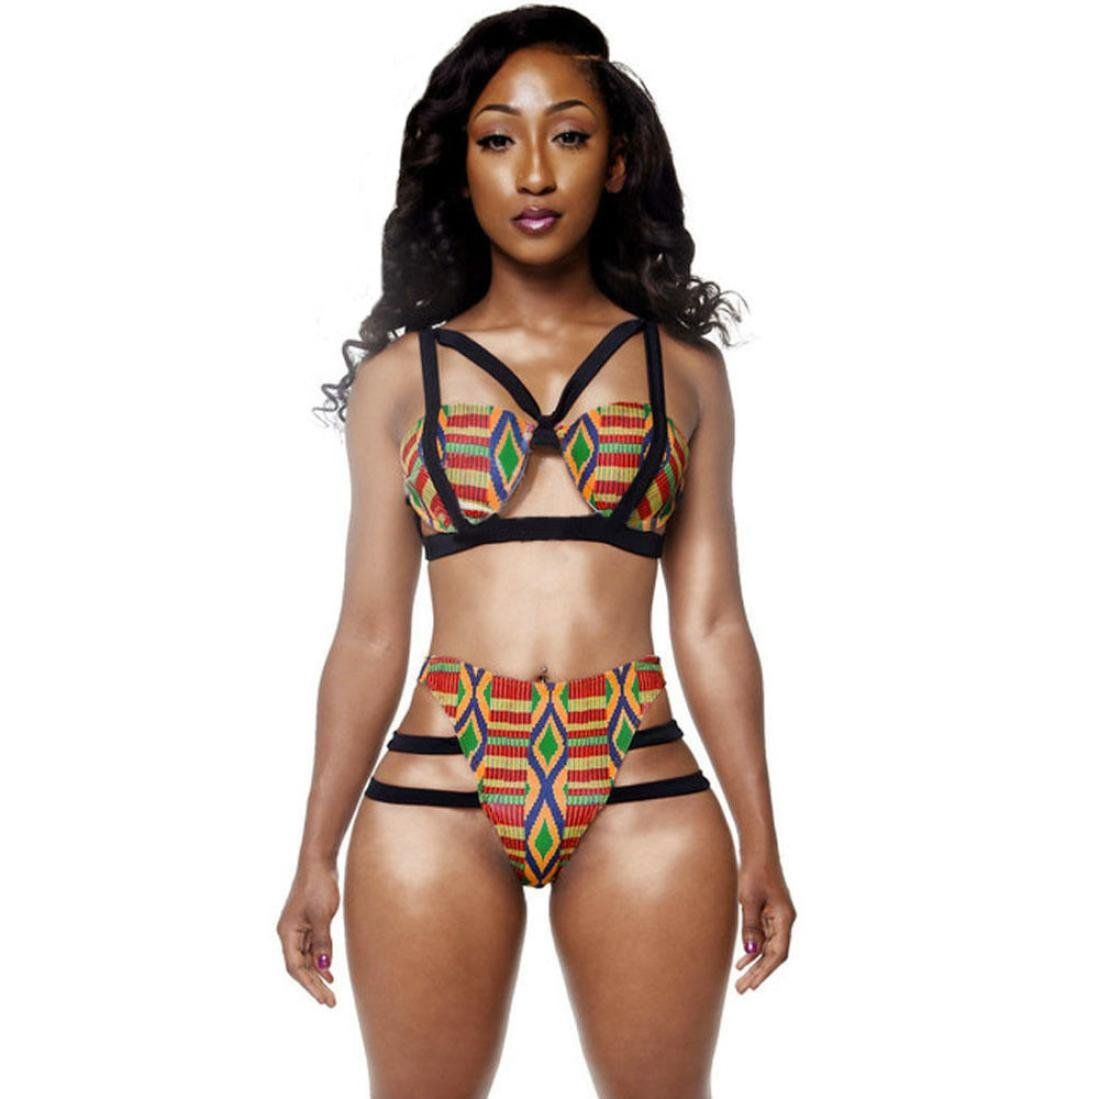 24633741a81 Amazon.com  Aurorax Women s Girls High Waist African Print Inspired Criss  Cross Bandage Bikini